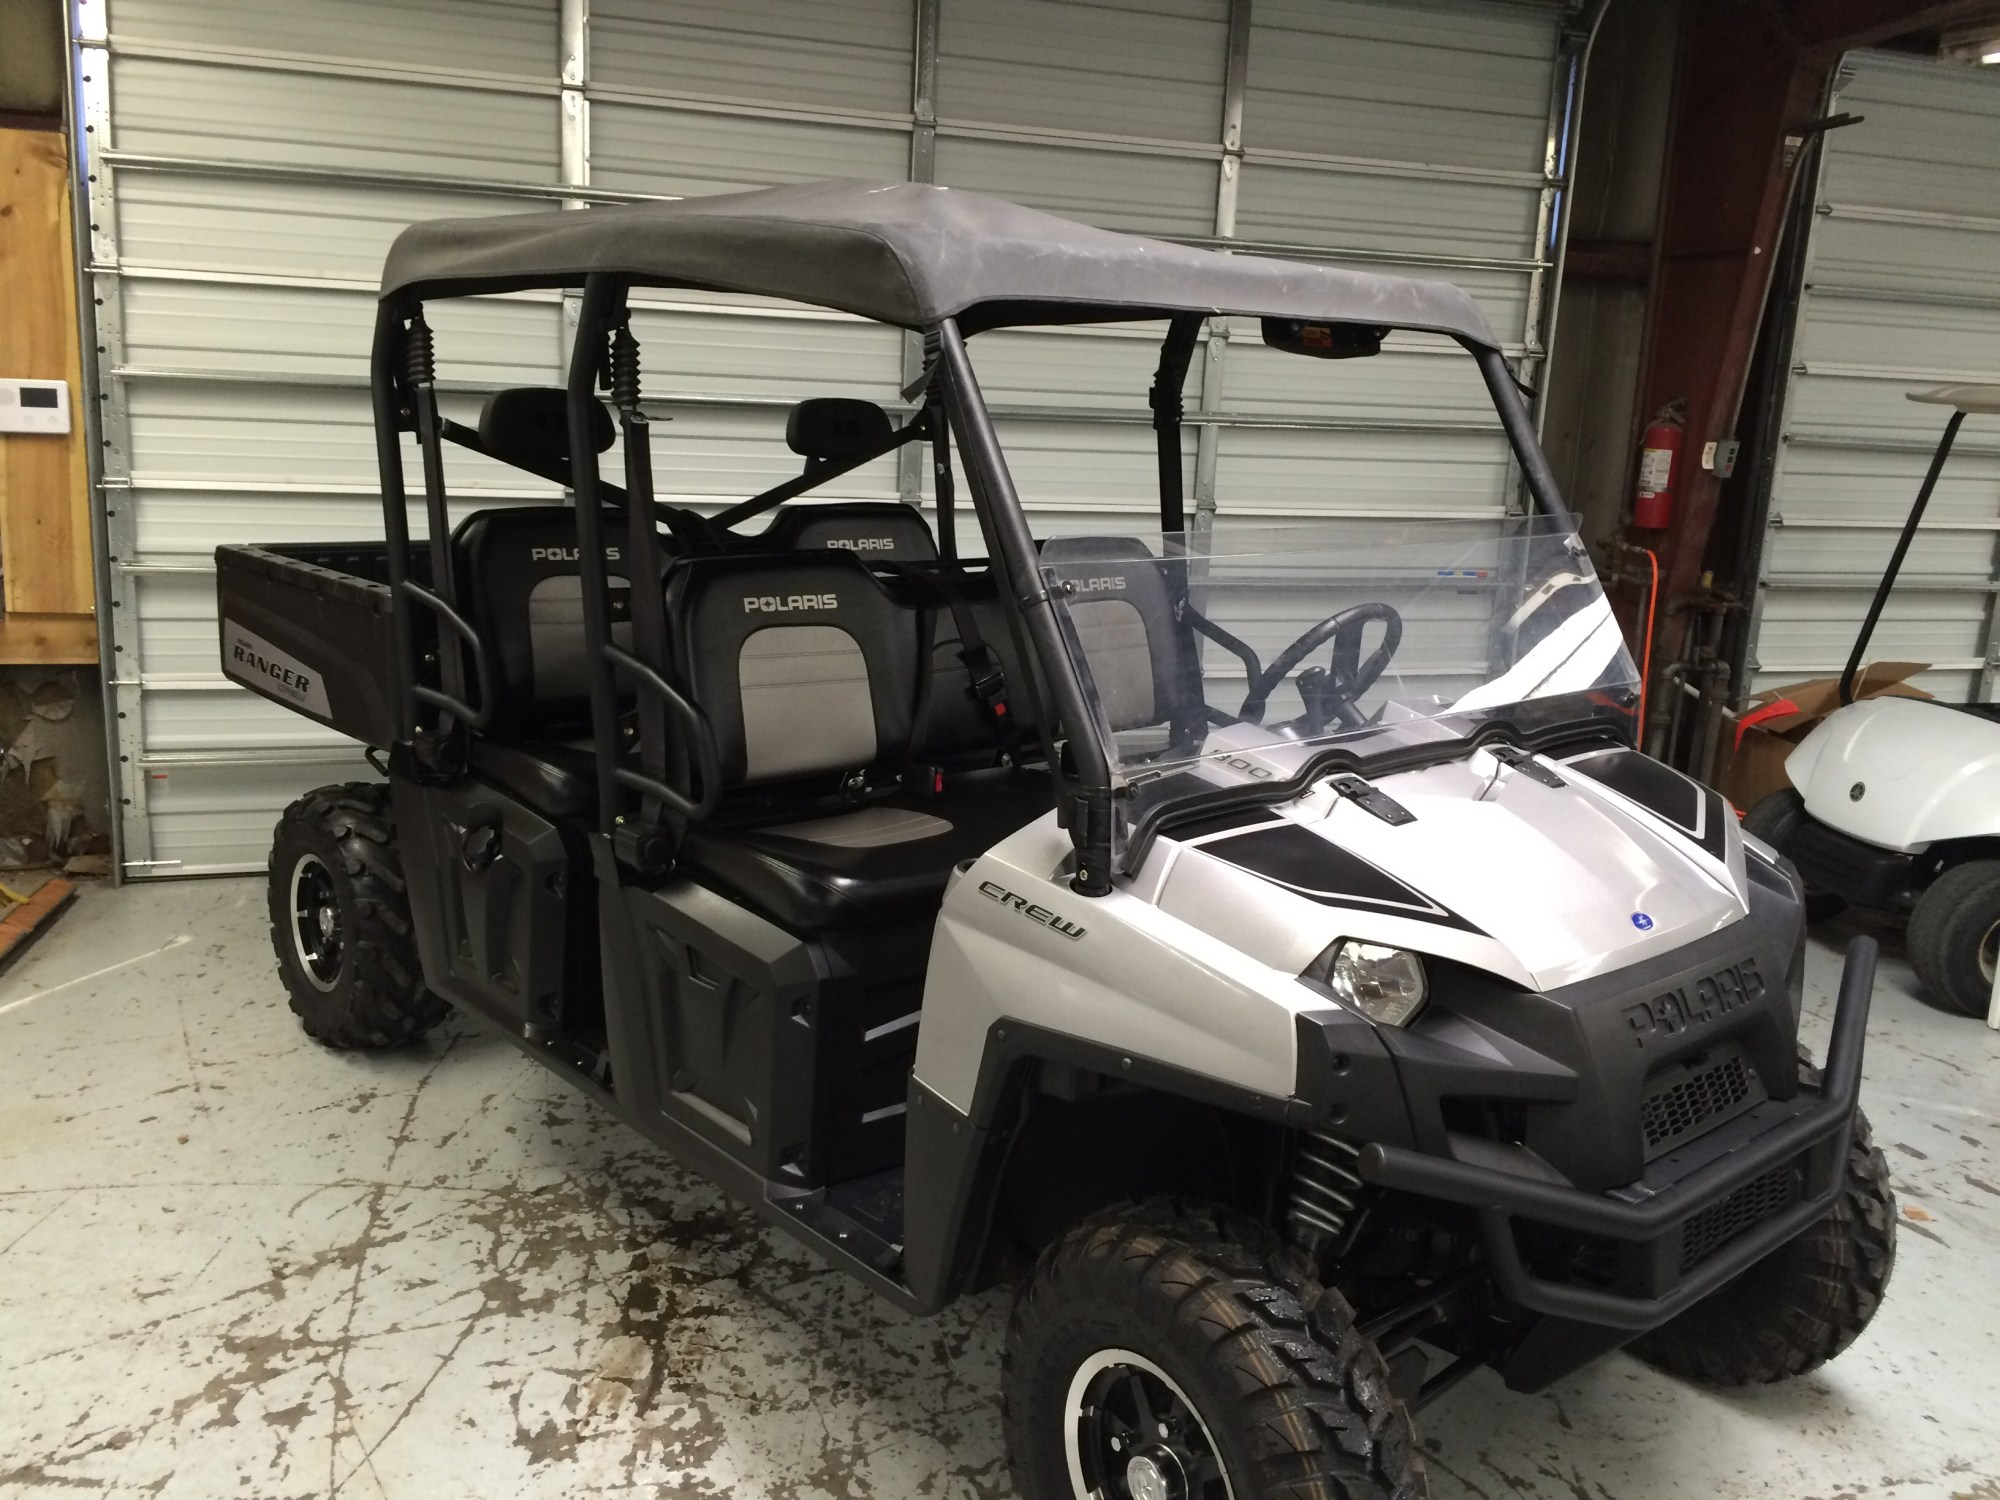 hight resolution of 2011 polaris ranger crew 800 pwr steering limited edition very clean new tires on front 3 007 miles looks and runs great 10 400 sold